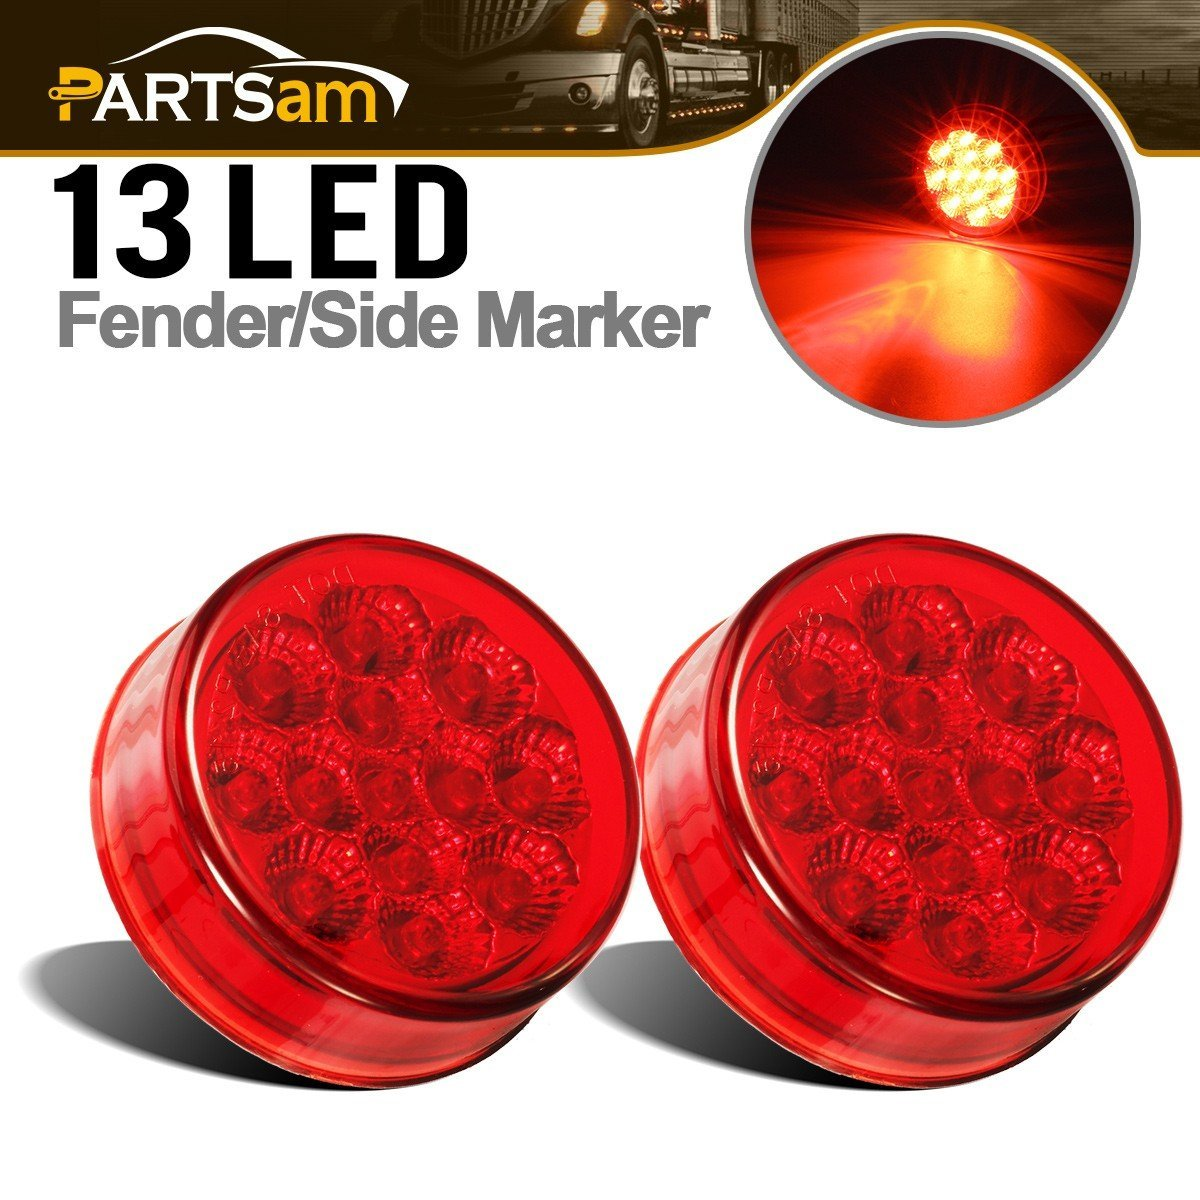 Partsam 2 Pcs 2.5'' Red Side indicator LED Marker Clearance Truck Light w/2 Standard Pin, Sealed Faceted 2.5 inch Round LED Trailer Truck Side Cab Marker Panel ID Light 13 Diodes w/Miro Reflectors by Partsam